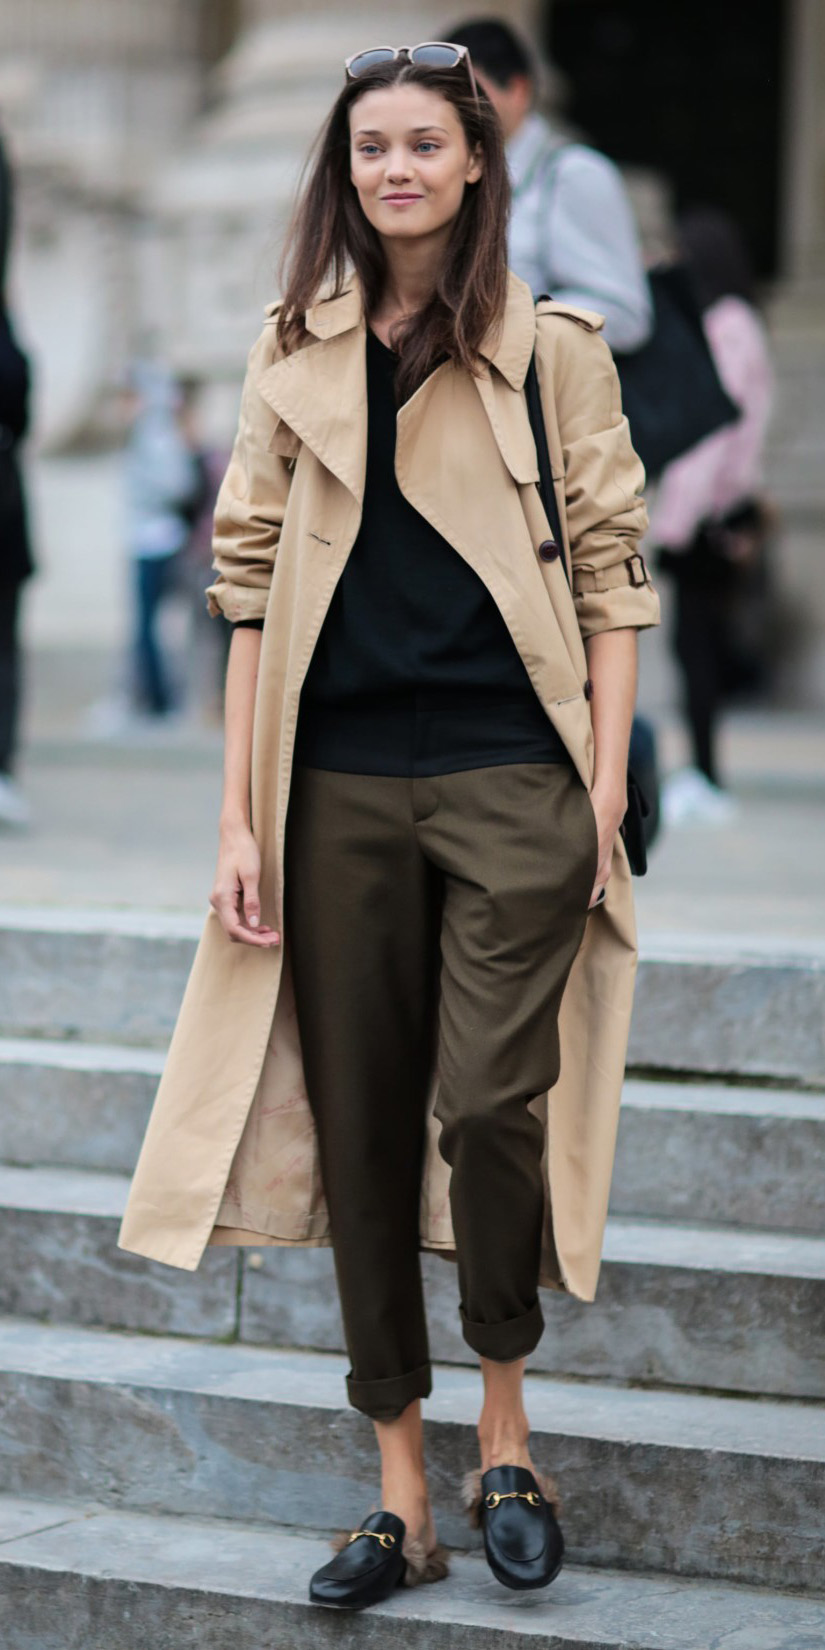 green-olive-joggers-pants-black-tee-brun-black-shoe-loafers-tan-jacket-coat-trench-fall-winter-weekend.jpg